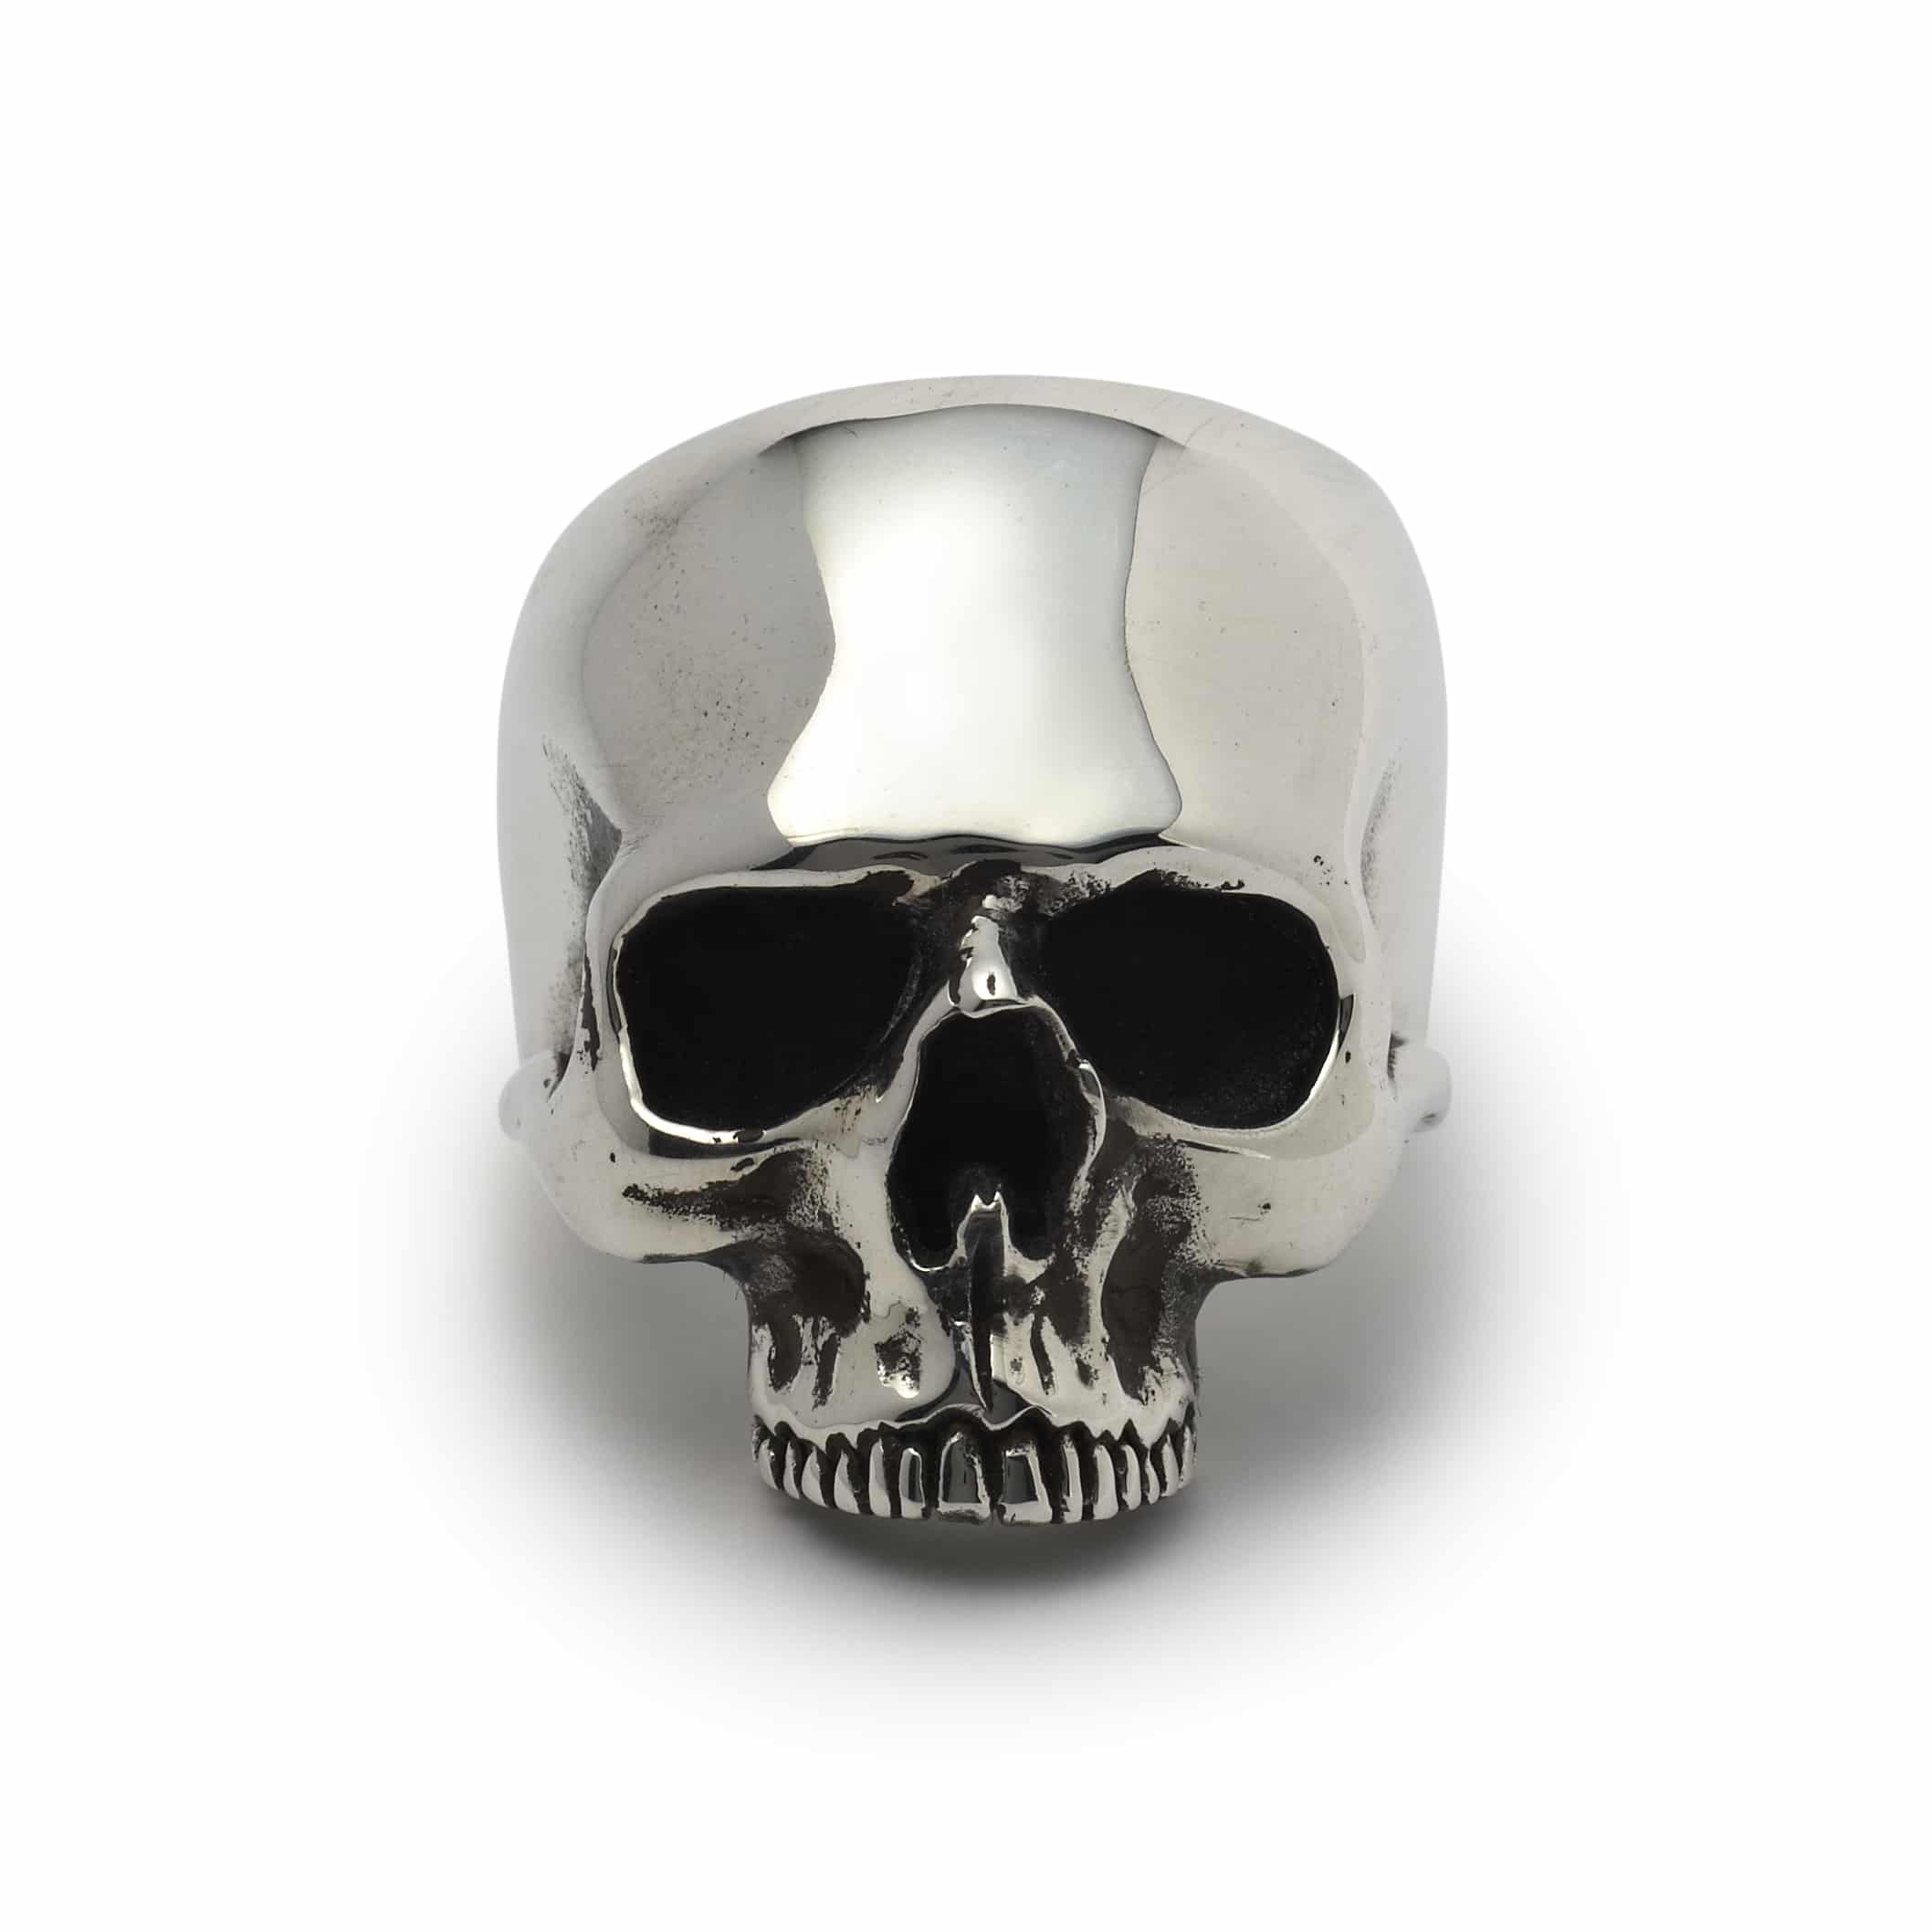 Jawless Anatomical Skull Ring The Great Frog